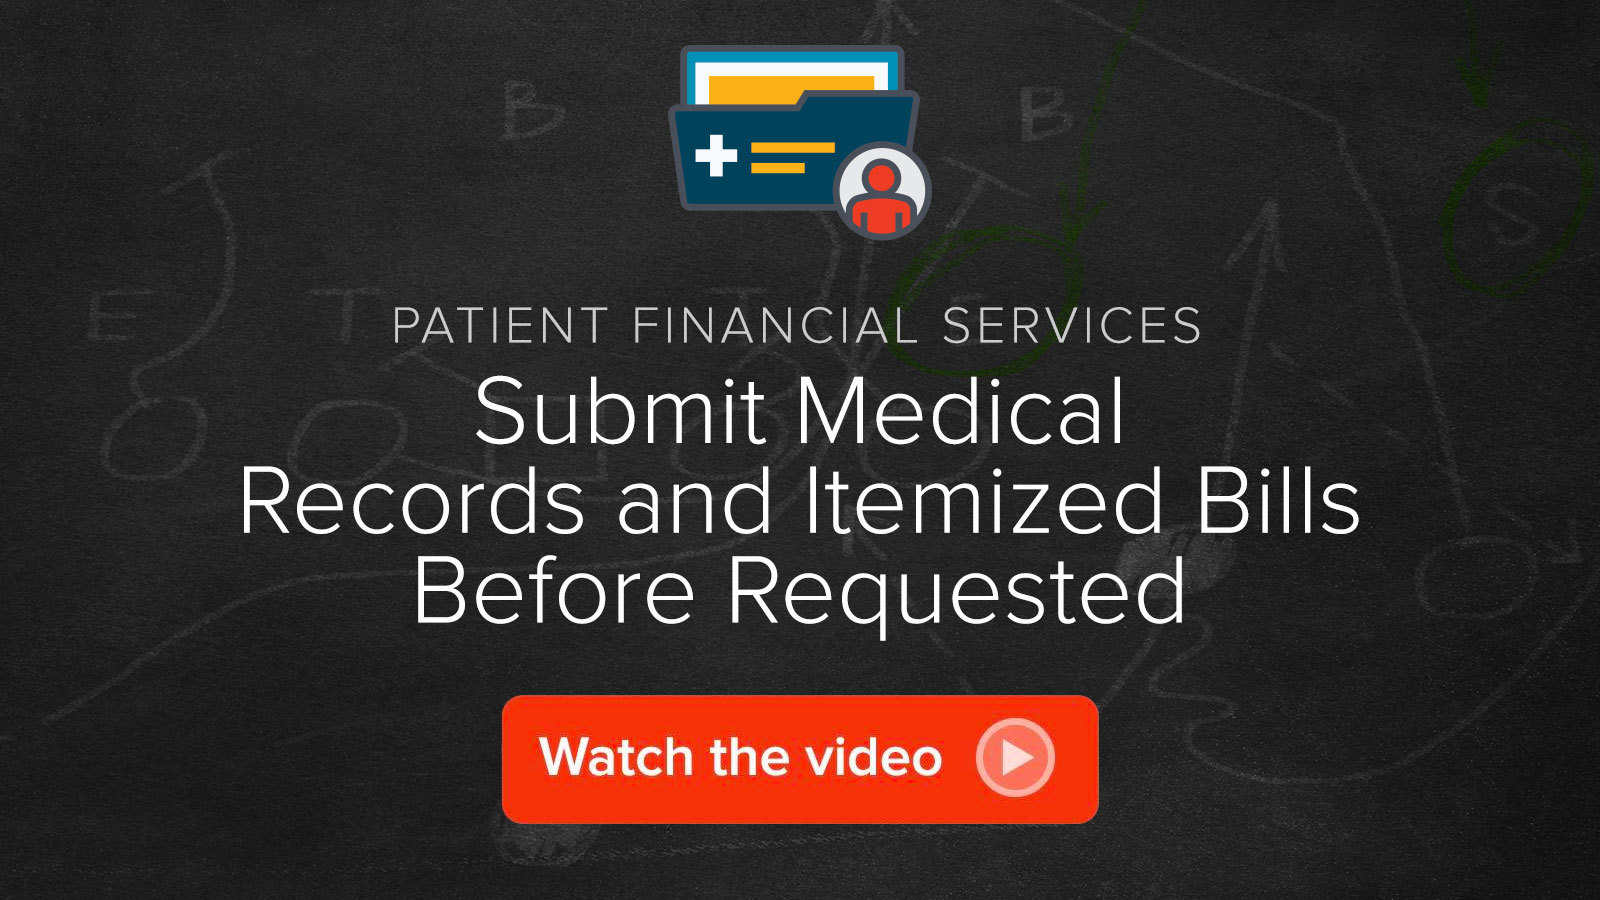 Watch the Submit Medical Records and Itemized Bills Before Requested video